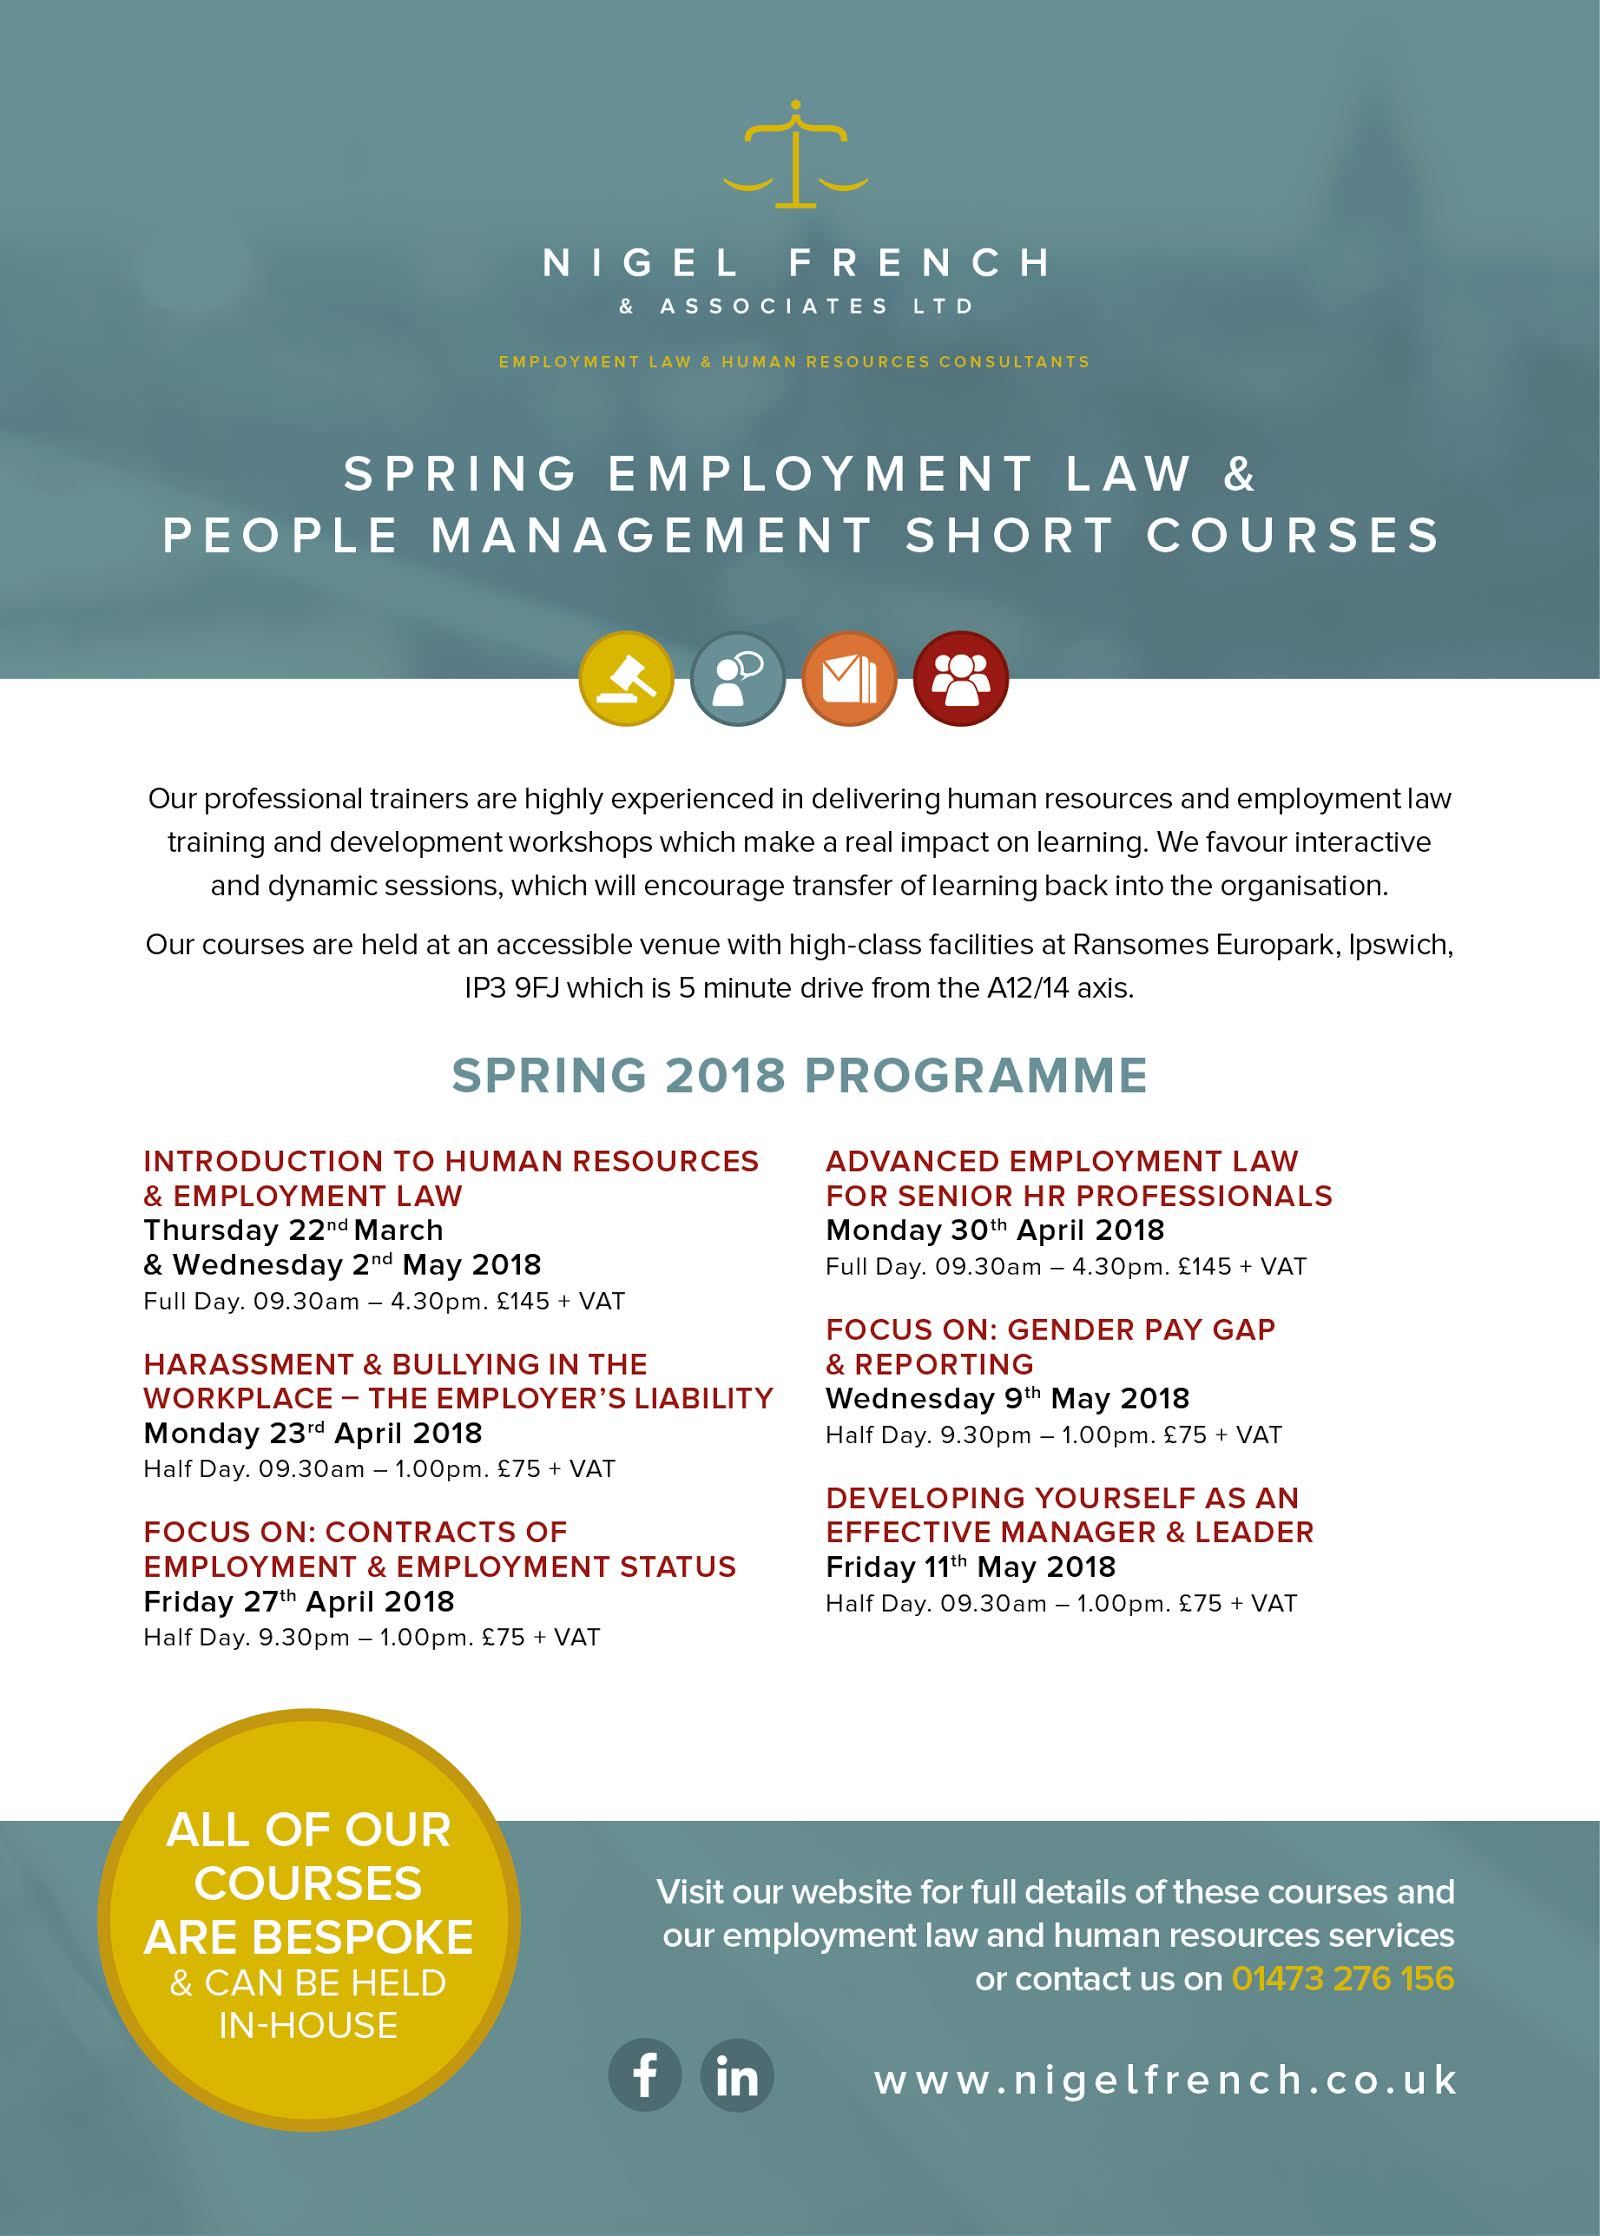 Spring People Management and Employment Law courses